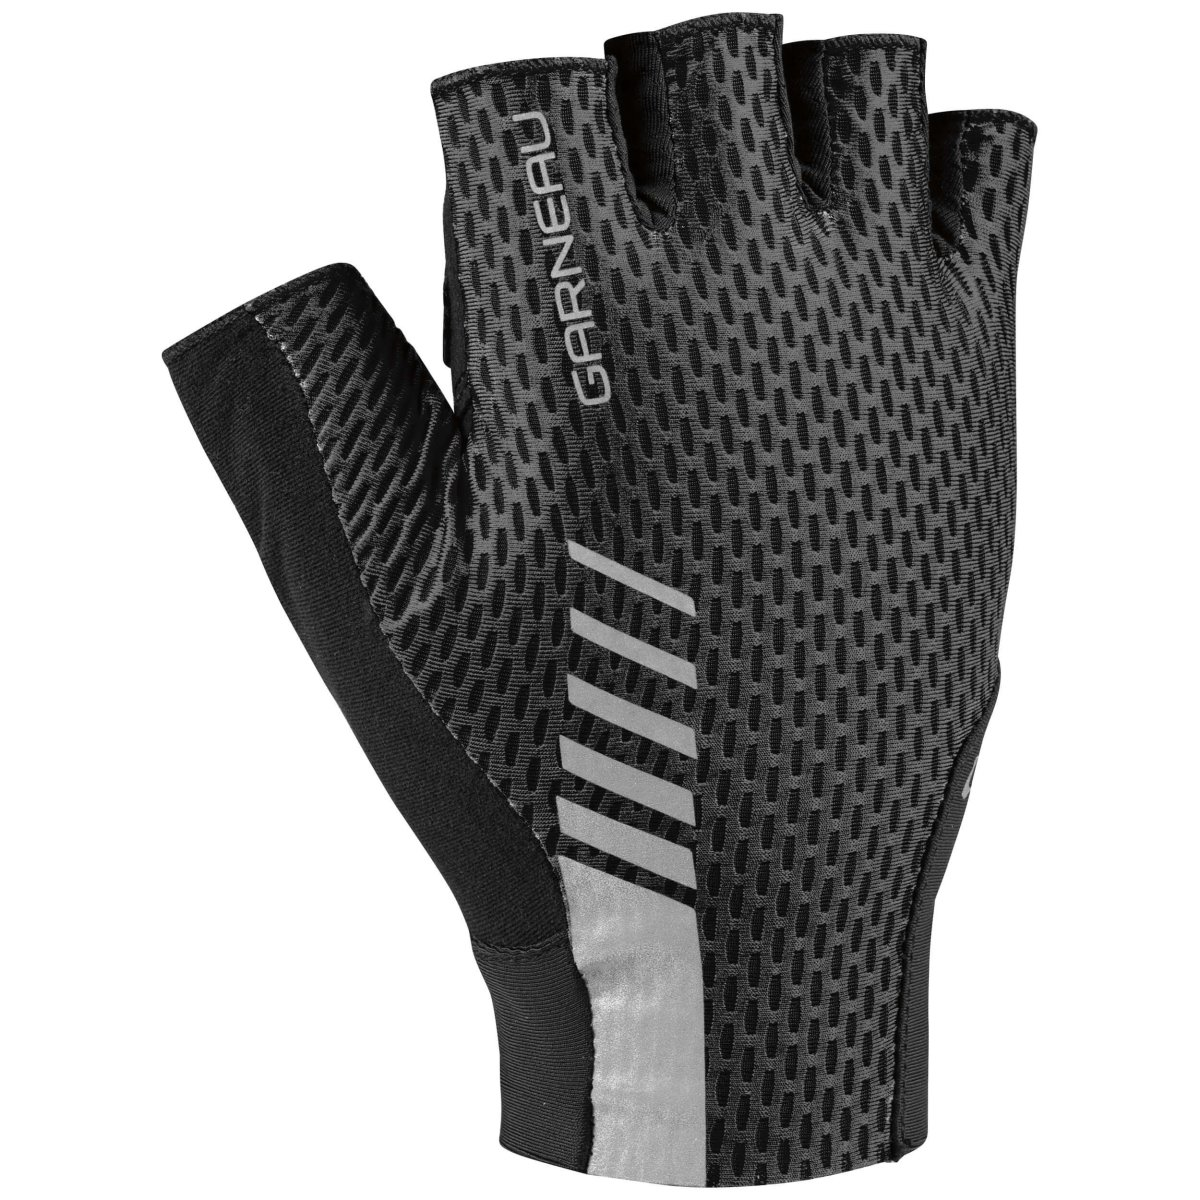 Перчатки Garneau Mondo Gel Gloves 1481189 020 L, 1481189 020 M